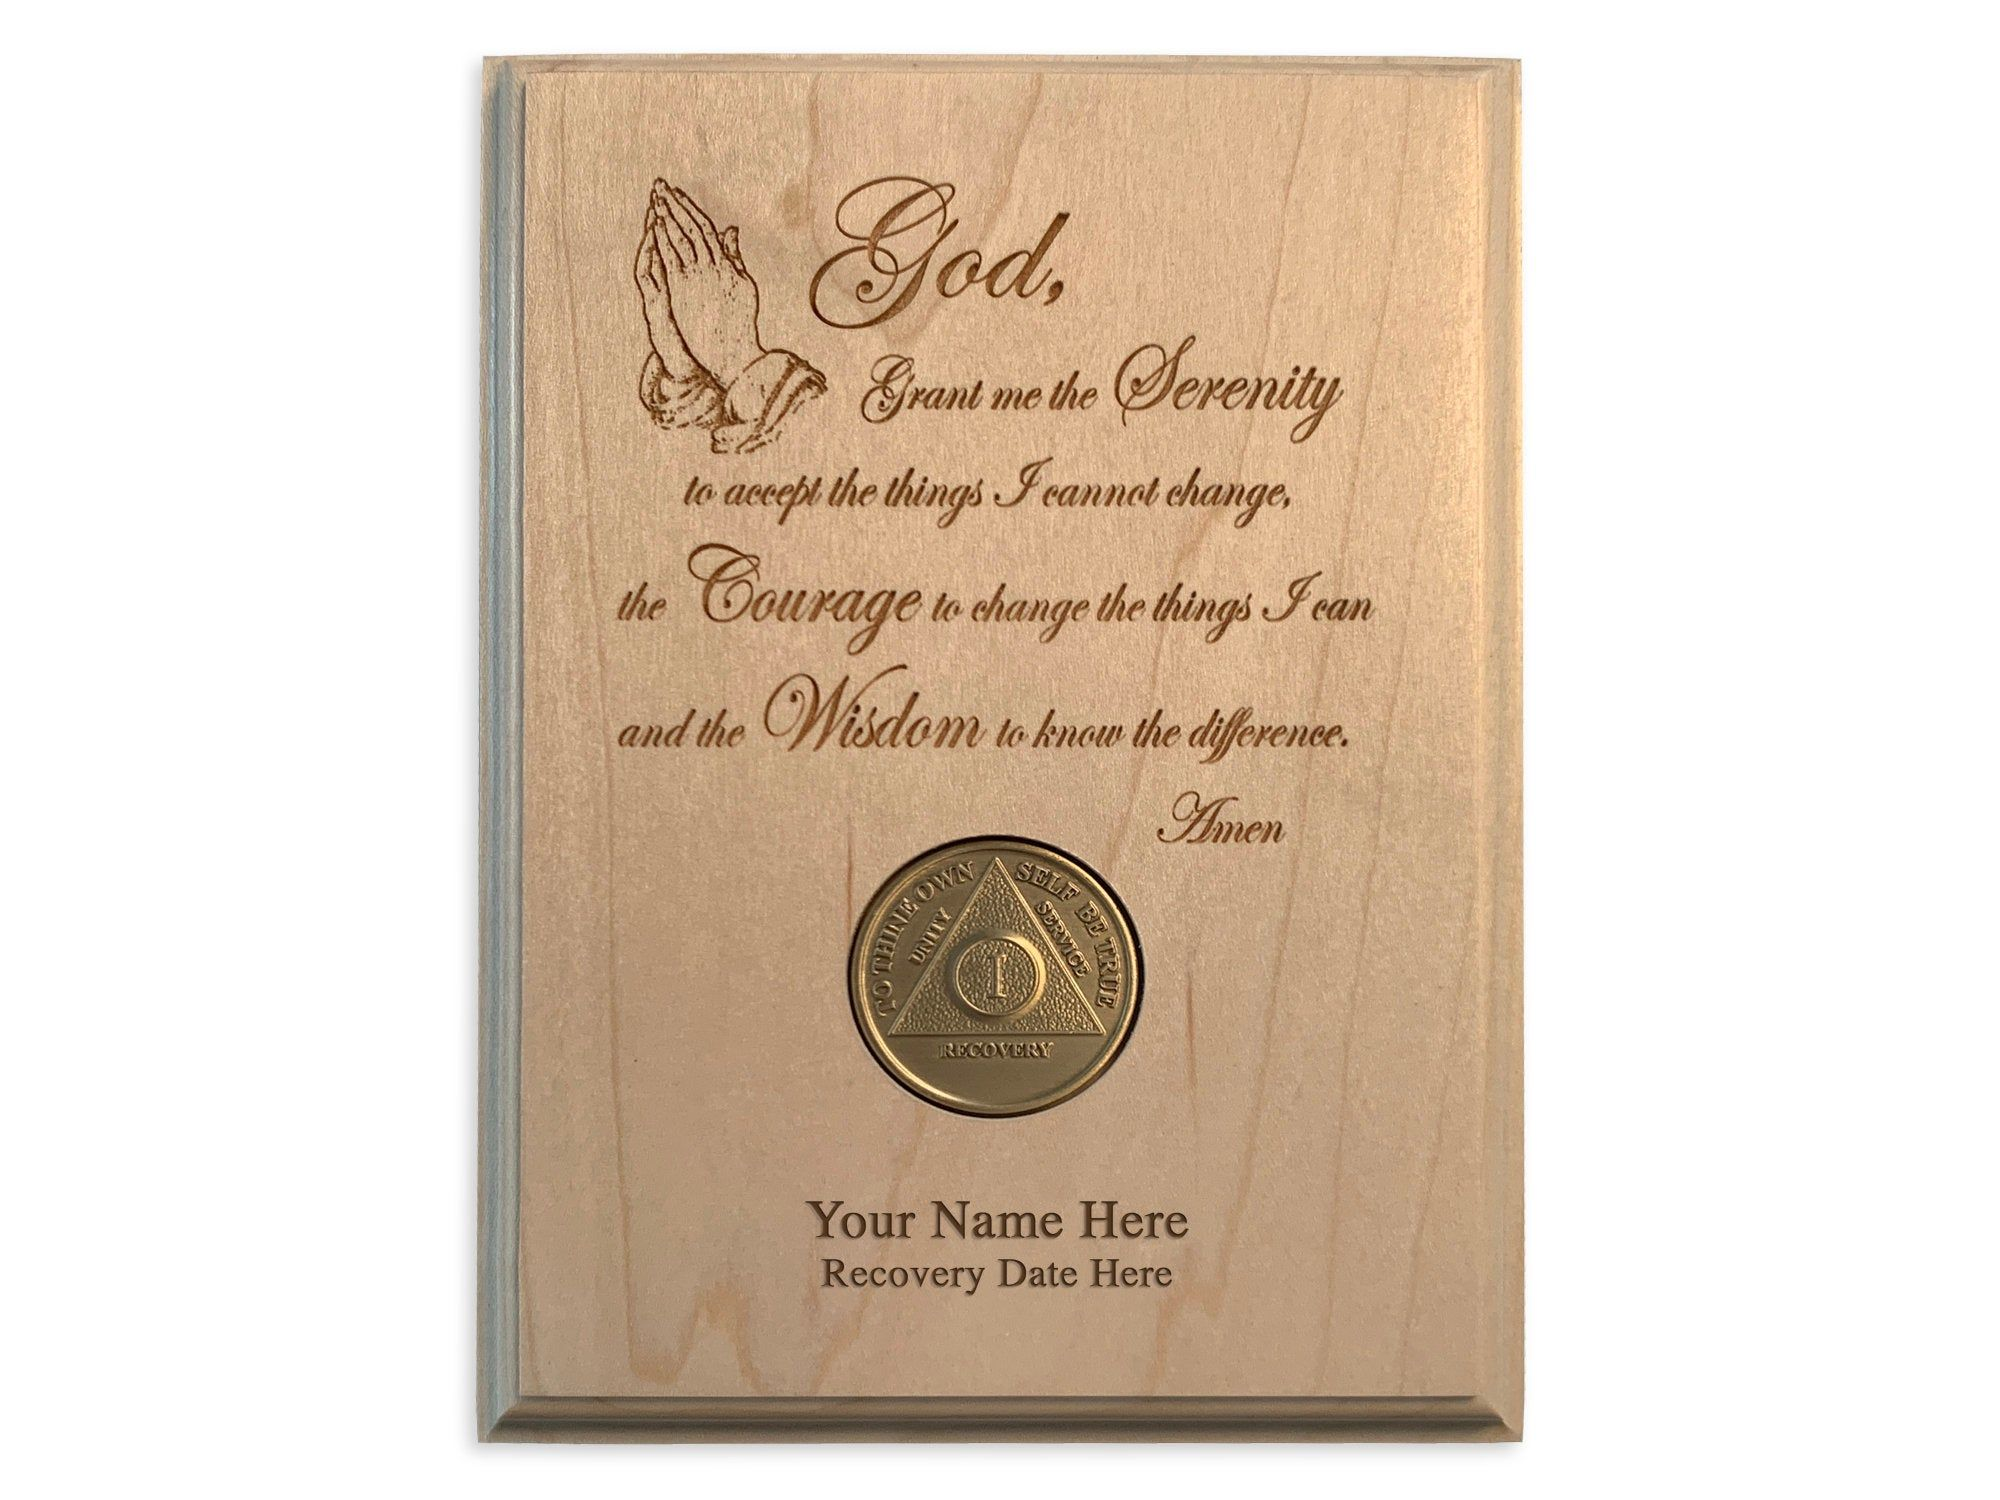 Recovery Medallion Holder Personalized 12 Step Serenity